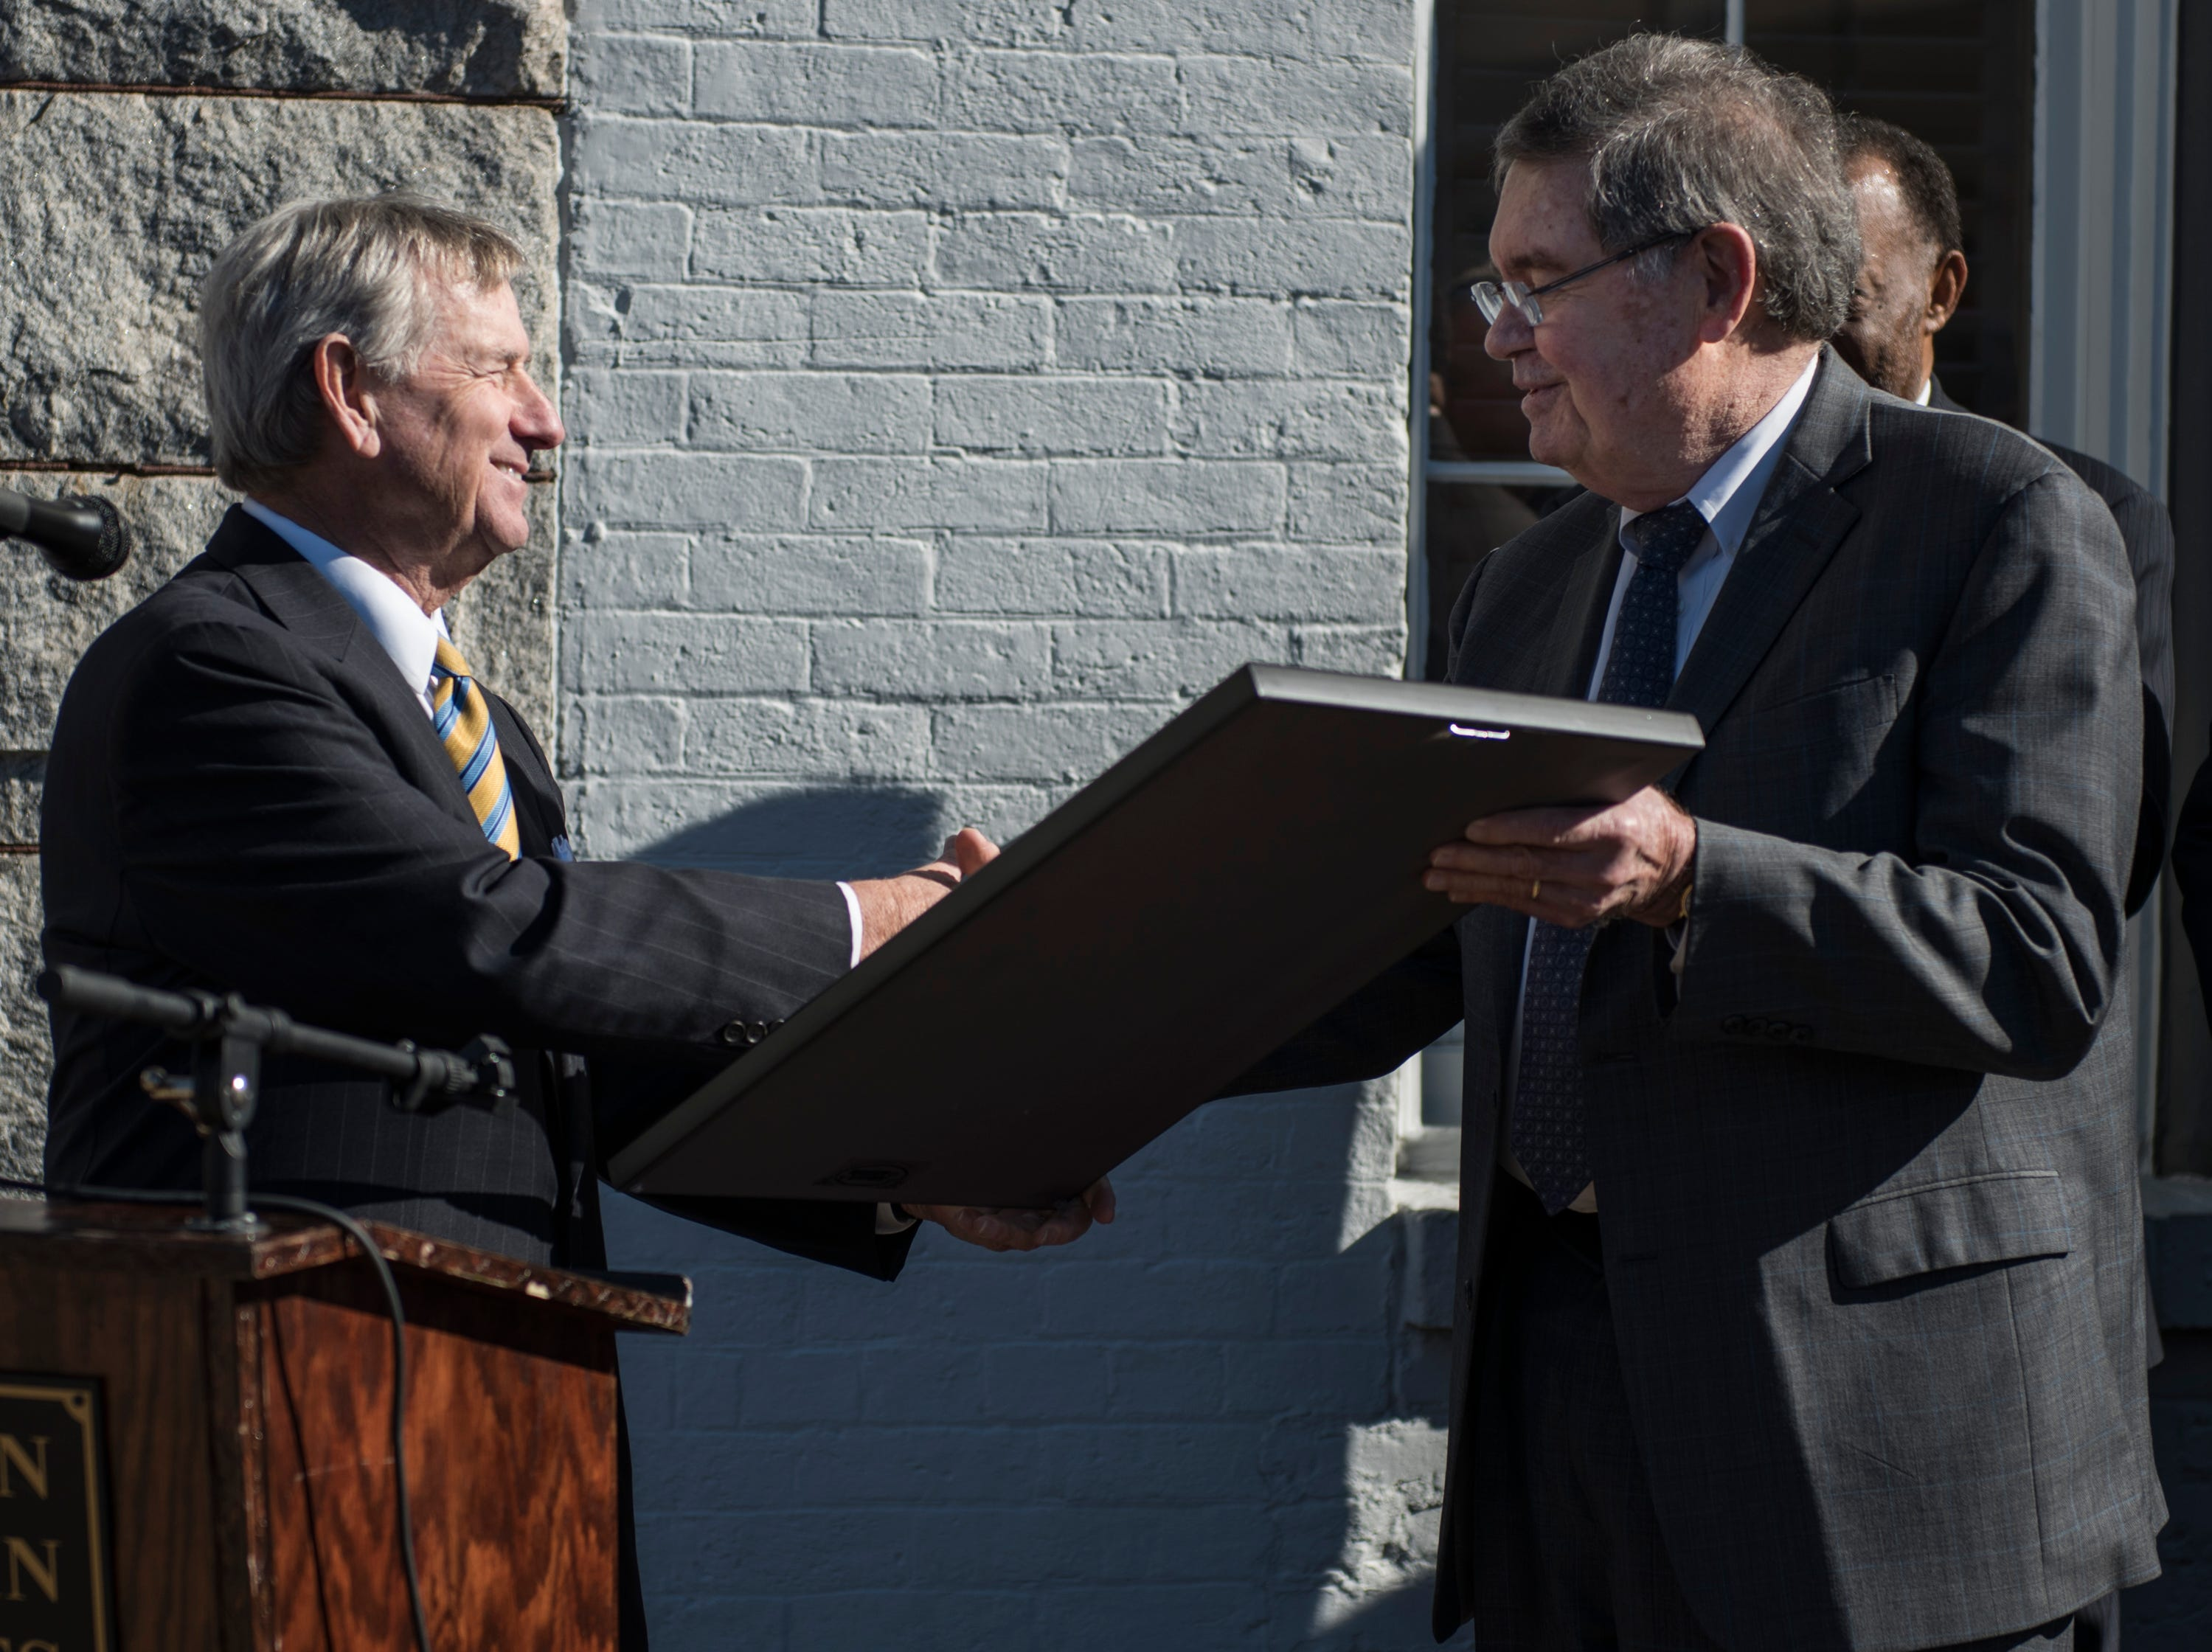 Mayor Todd Strange awards a key to the city to Jere Beasley during the Beasley Allen law firm 40th anniversary celebration in Montgomery, Ala., on Wednesday, Jan. 9, 2019.